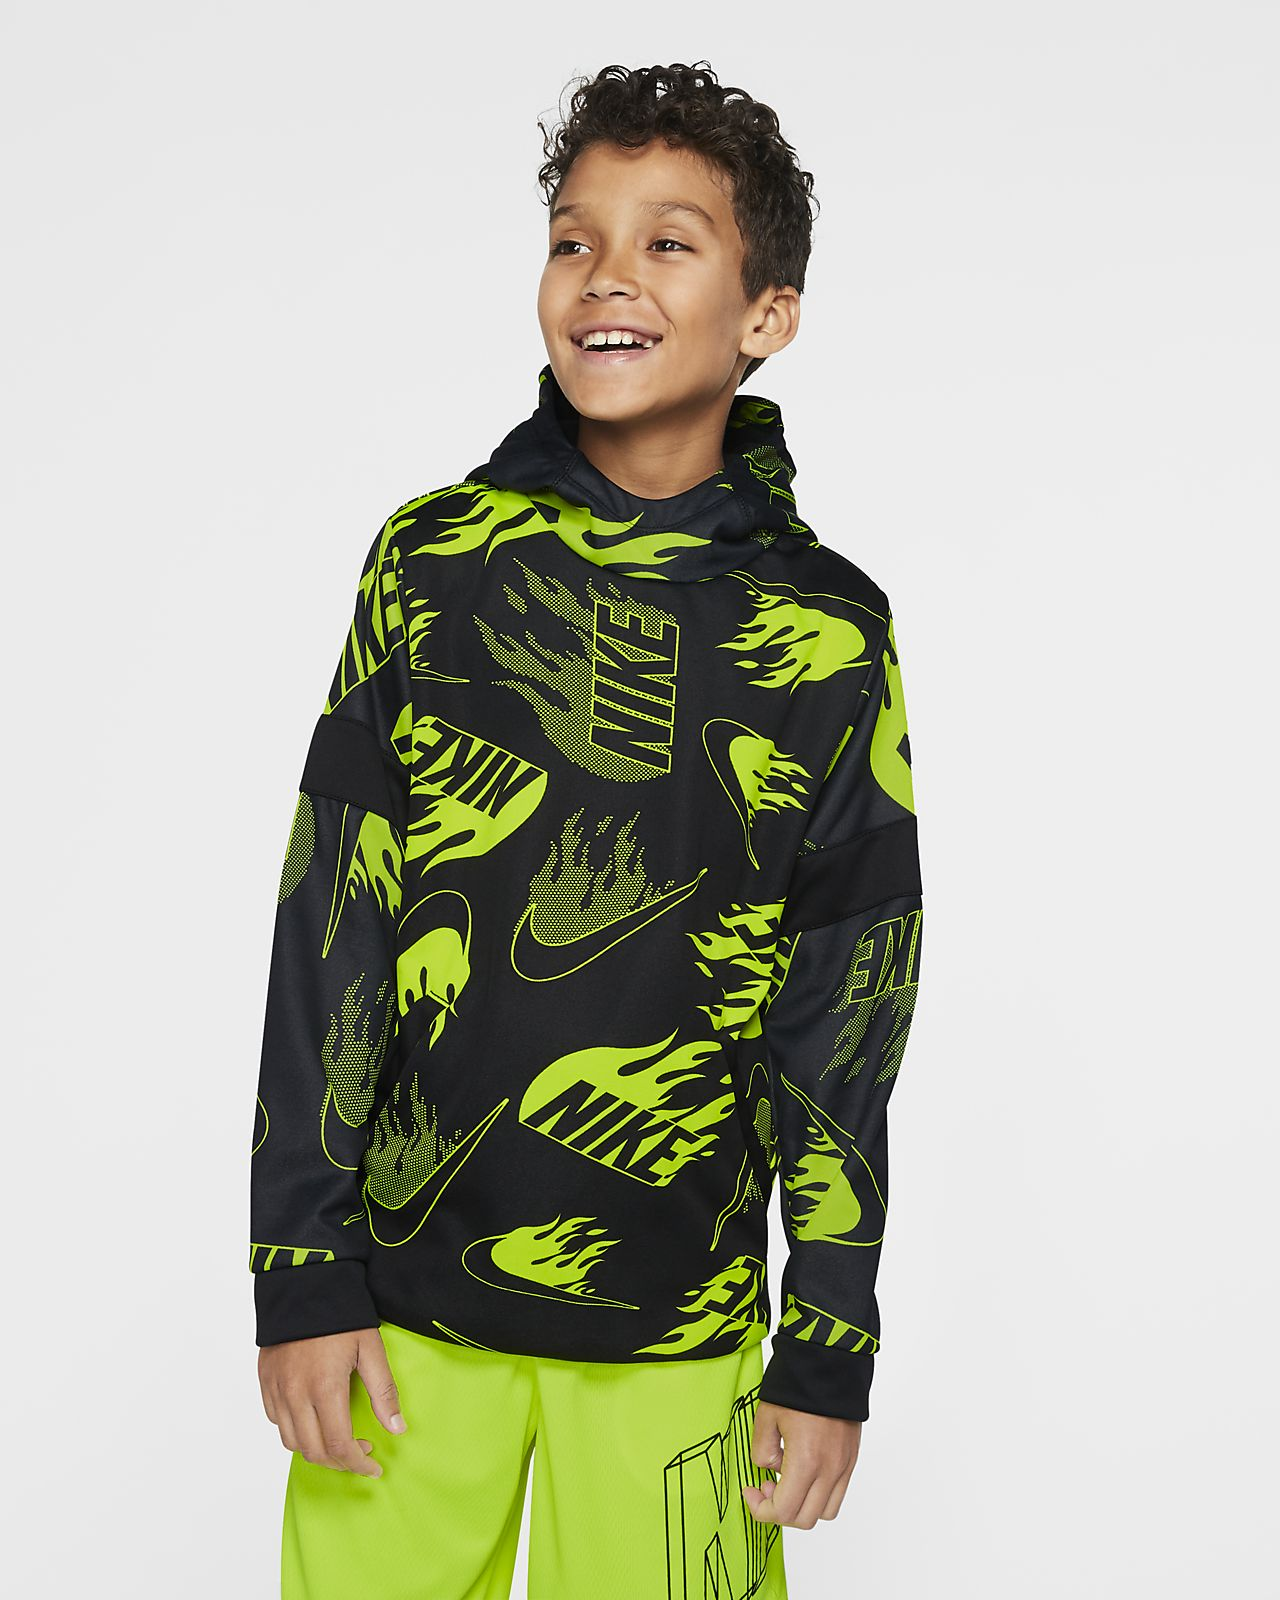 NIKE Boys Big Kids Black /& Yellow Hoodie Therma Pullover Dri-Fit Sweater-M,L,XL